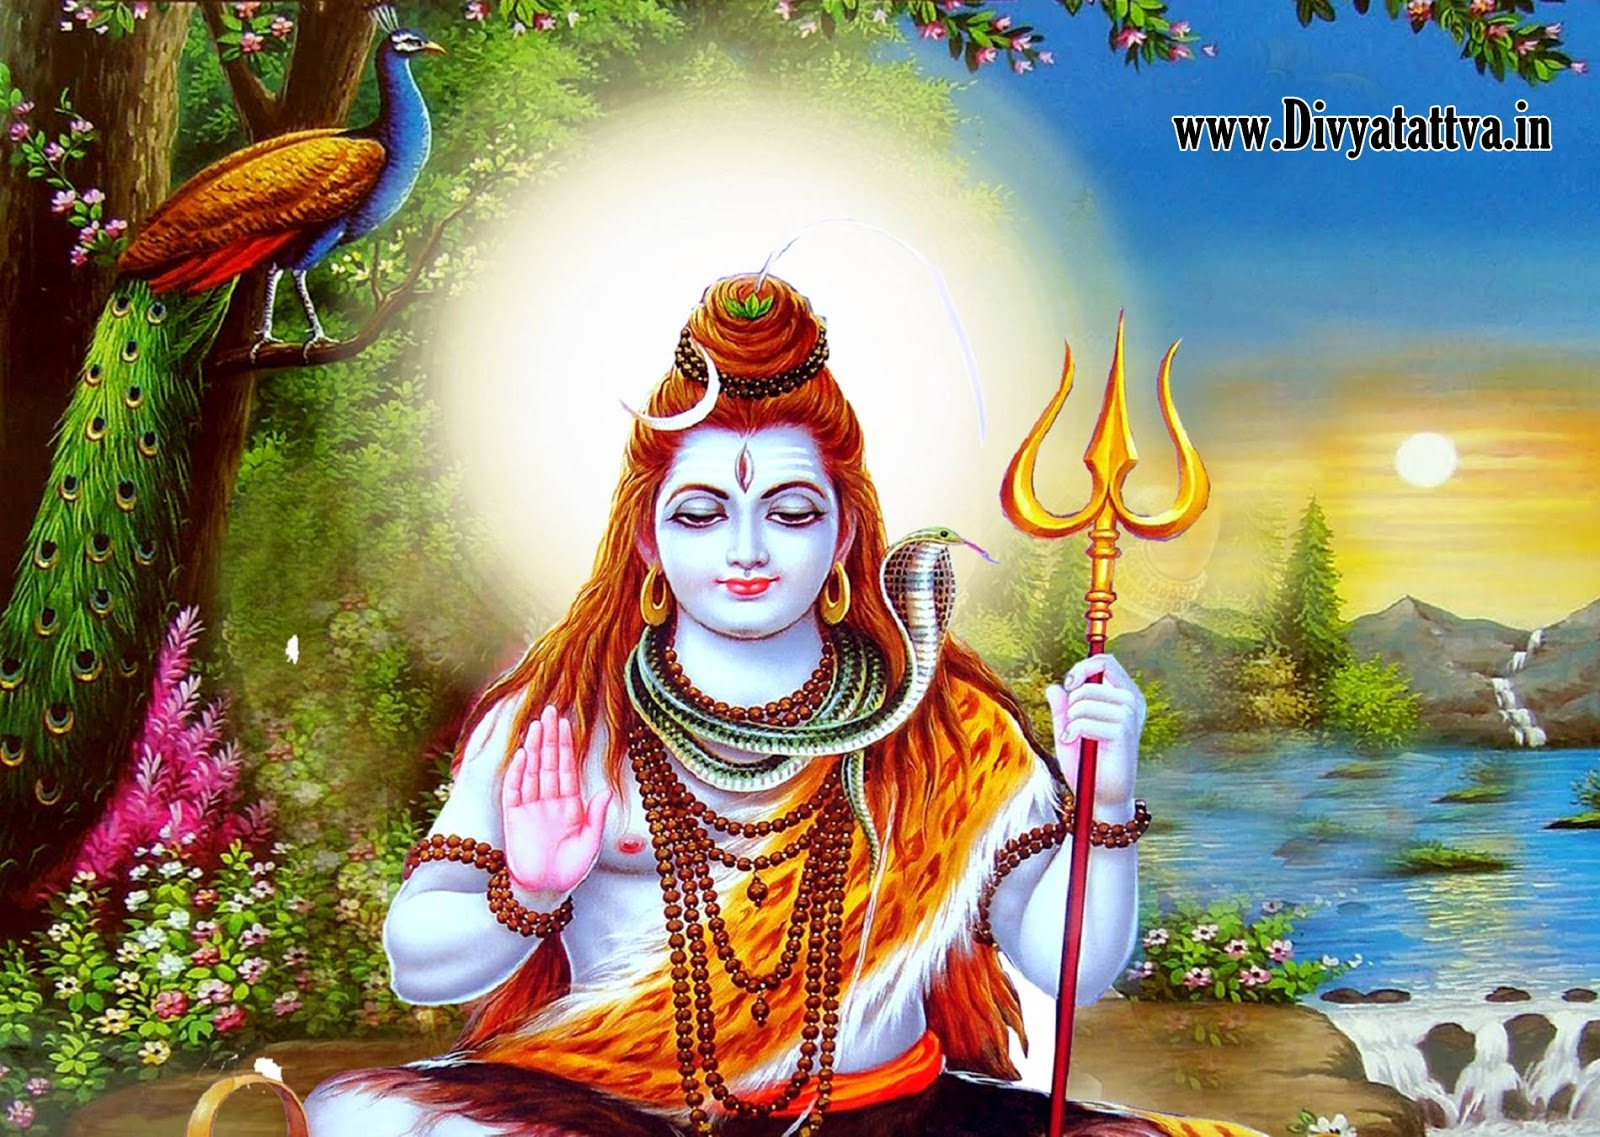 Divyatattva Astrology Free Horoscopes Psychic Tarot Yoga Tantra     Spiritual god of hindus lord shiva wallpaper  shiva parivar  sadhna samadhi lord  shiva photos